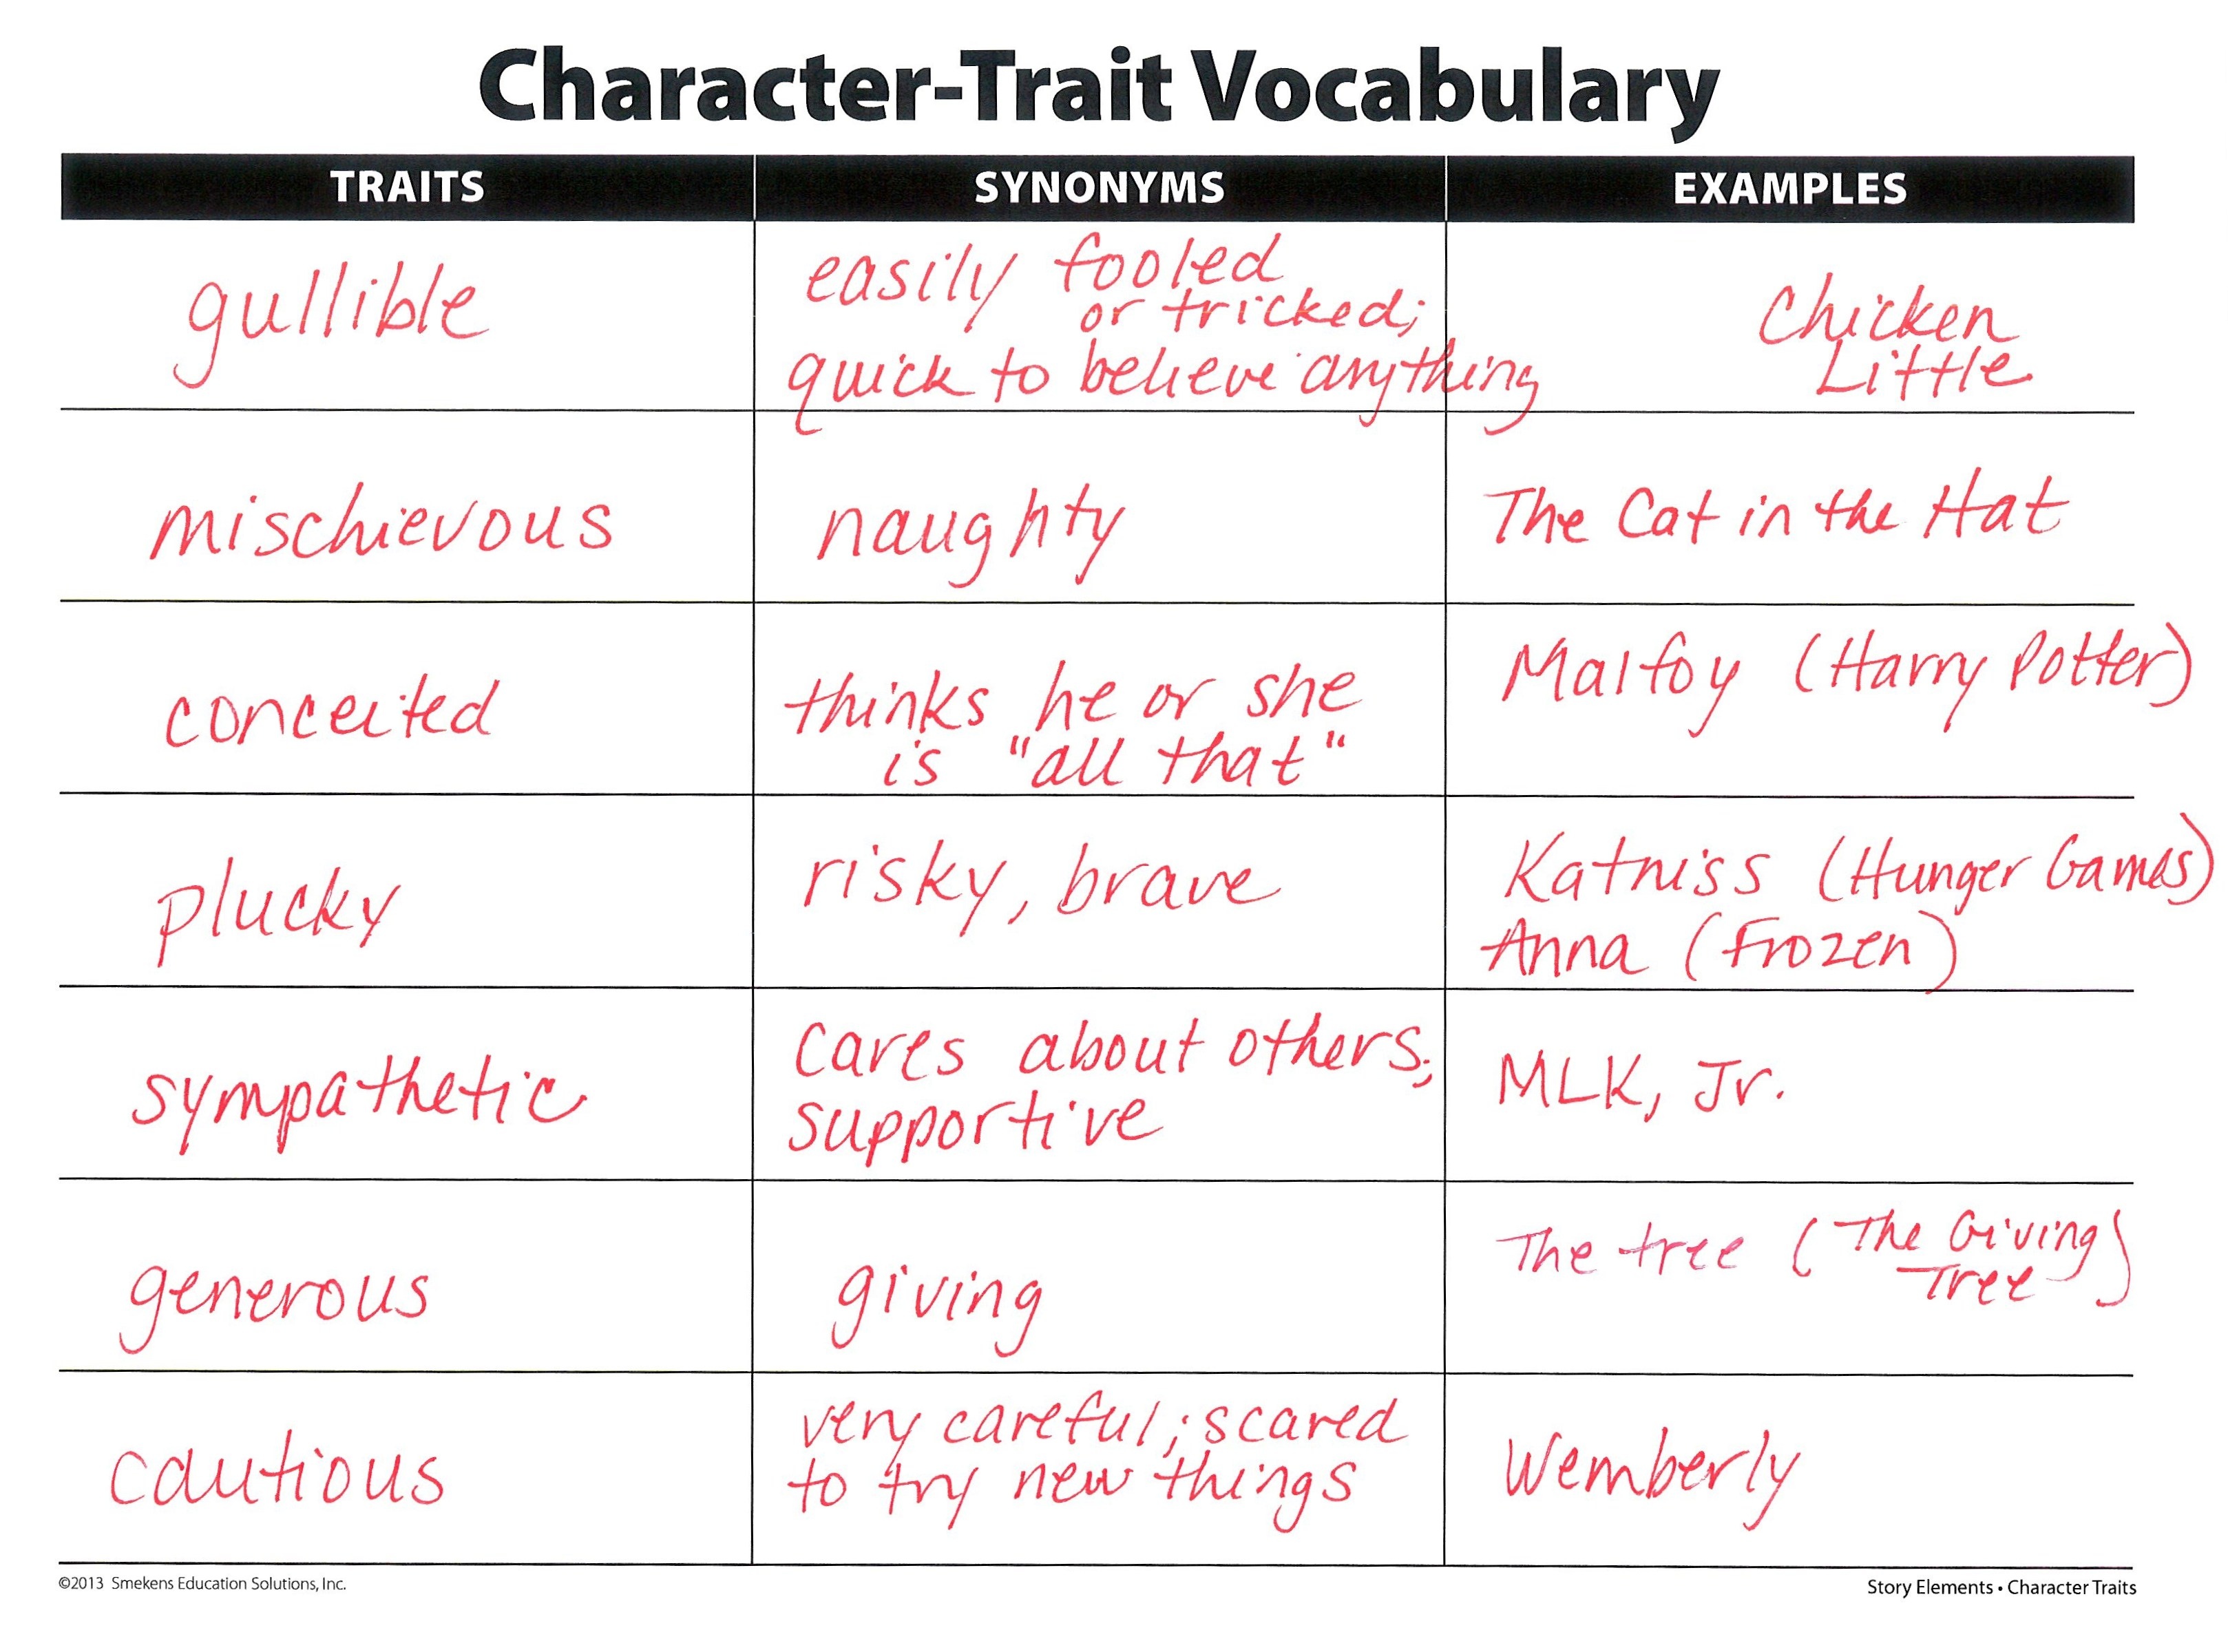 Clarify Character Traits Versus Feelings